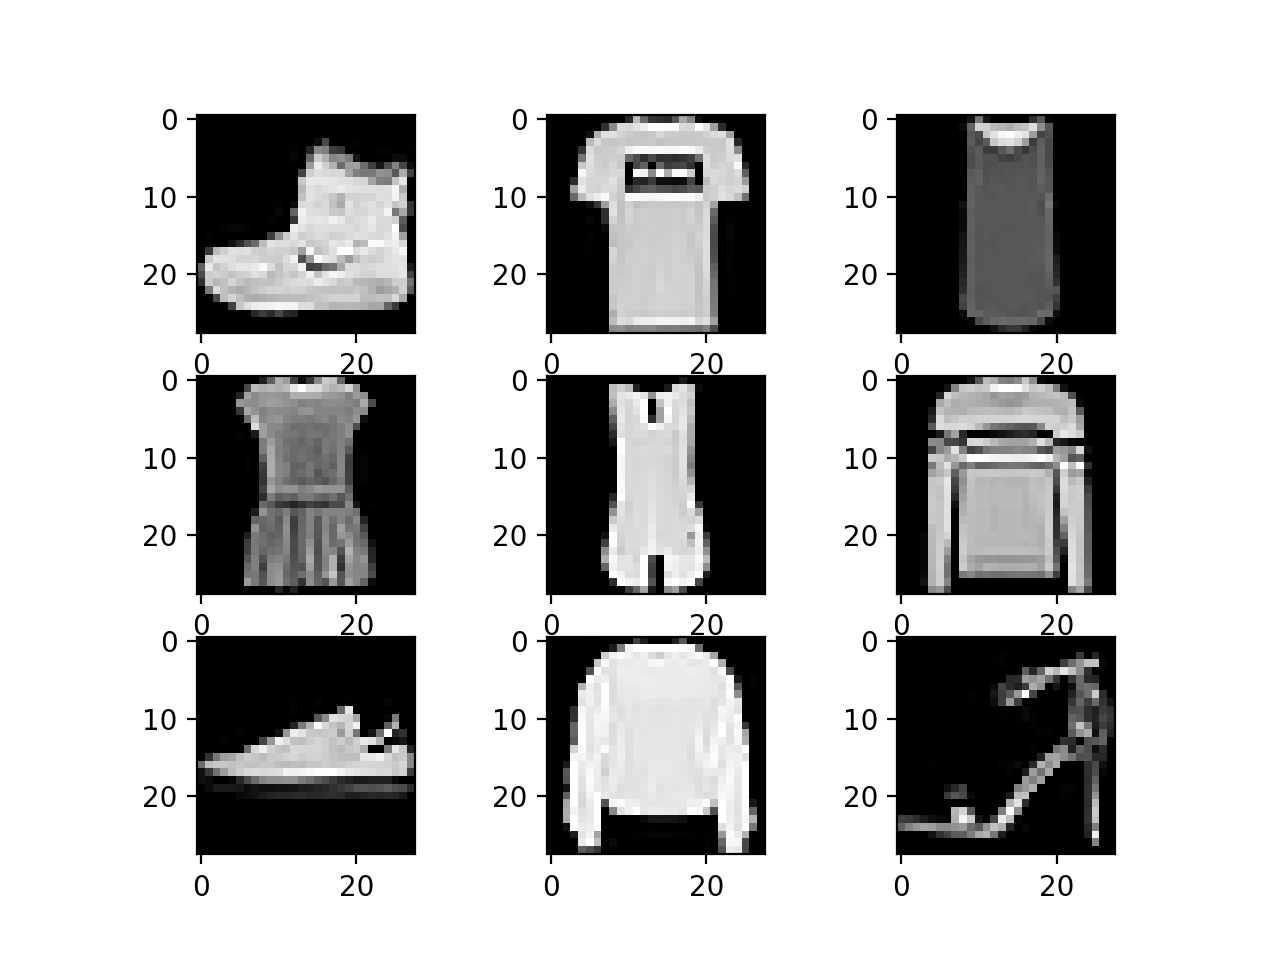 Plot of a Subset of Images From the Fashion-MNIST Dataset